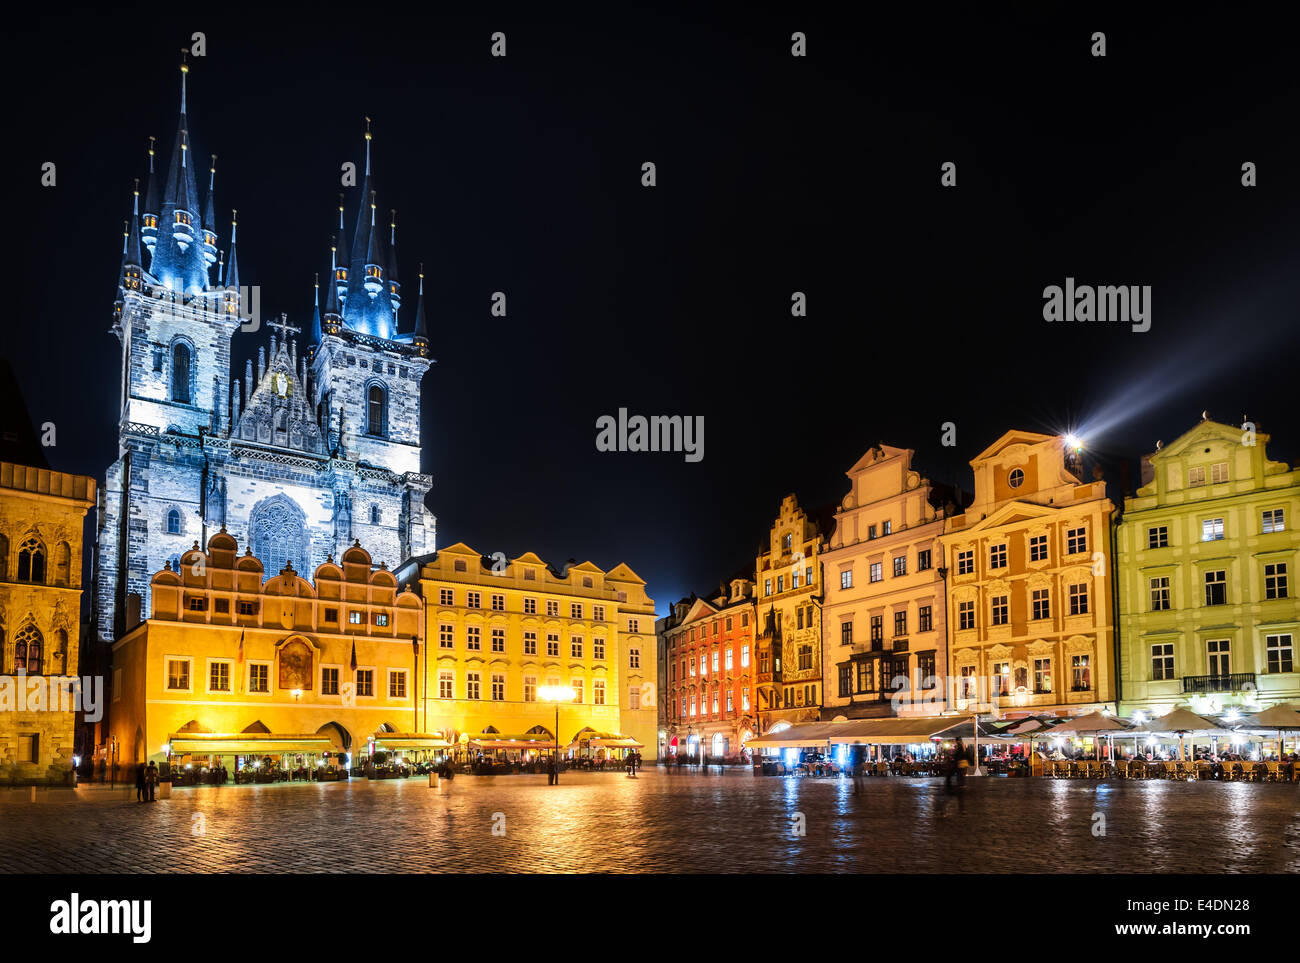 Image taken at night with one of the Prague symbols, Church of Our Lady of Tyn in Stare Mesto square. - Stock Image